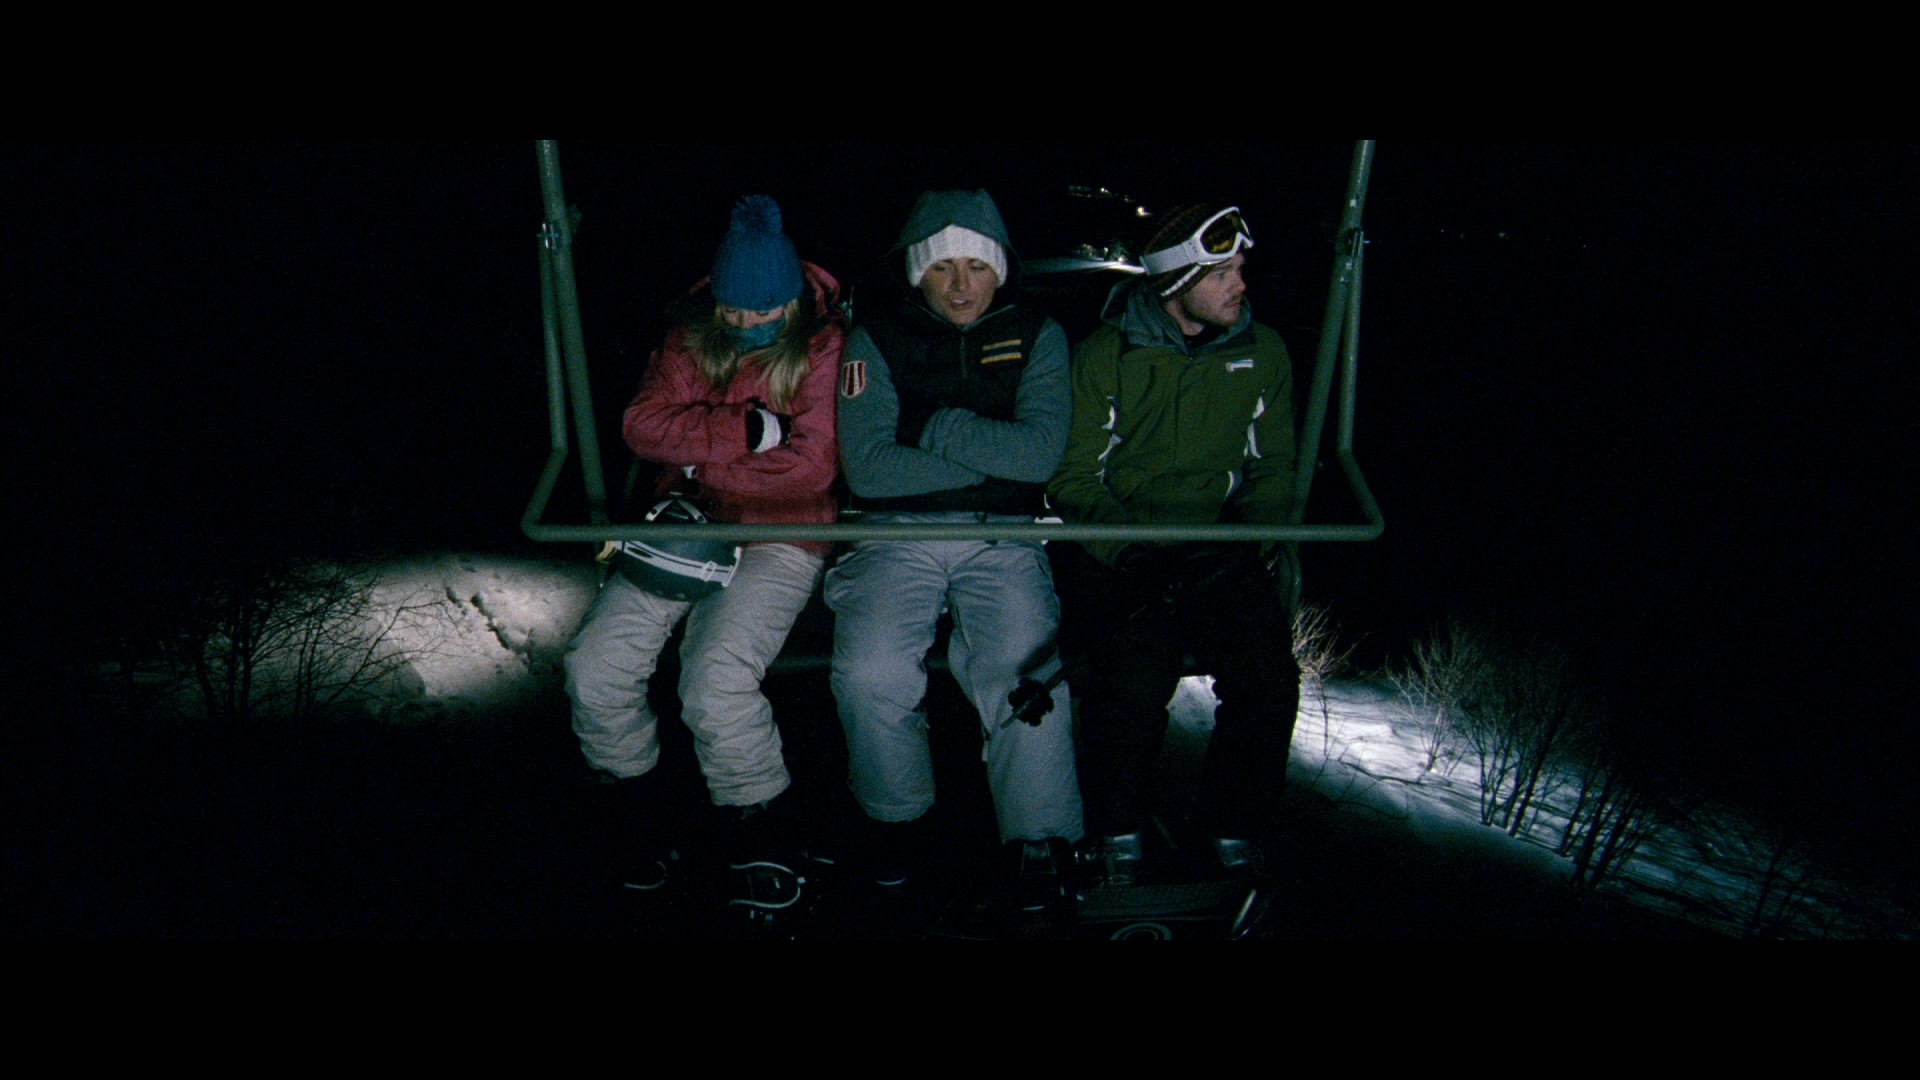 Emma Bell, Kevein Zegers and Shawn Ashmore trapped in mid-air on a ski chairlift in Frozen (2010)